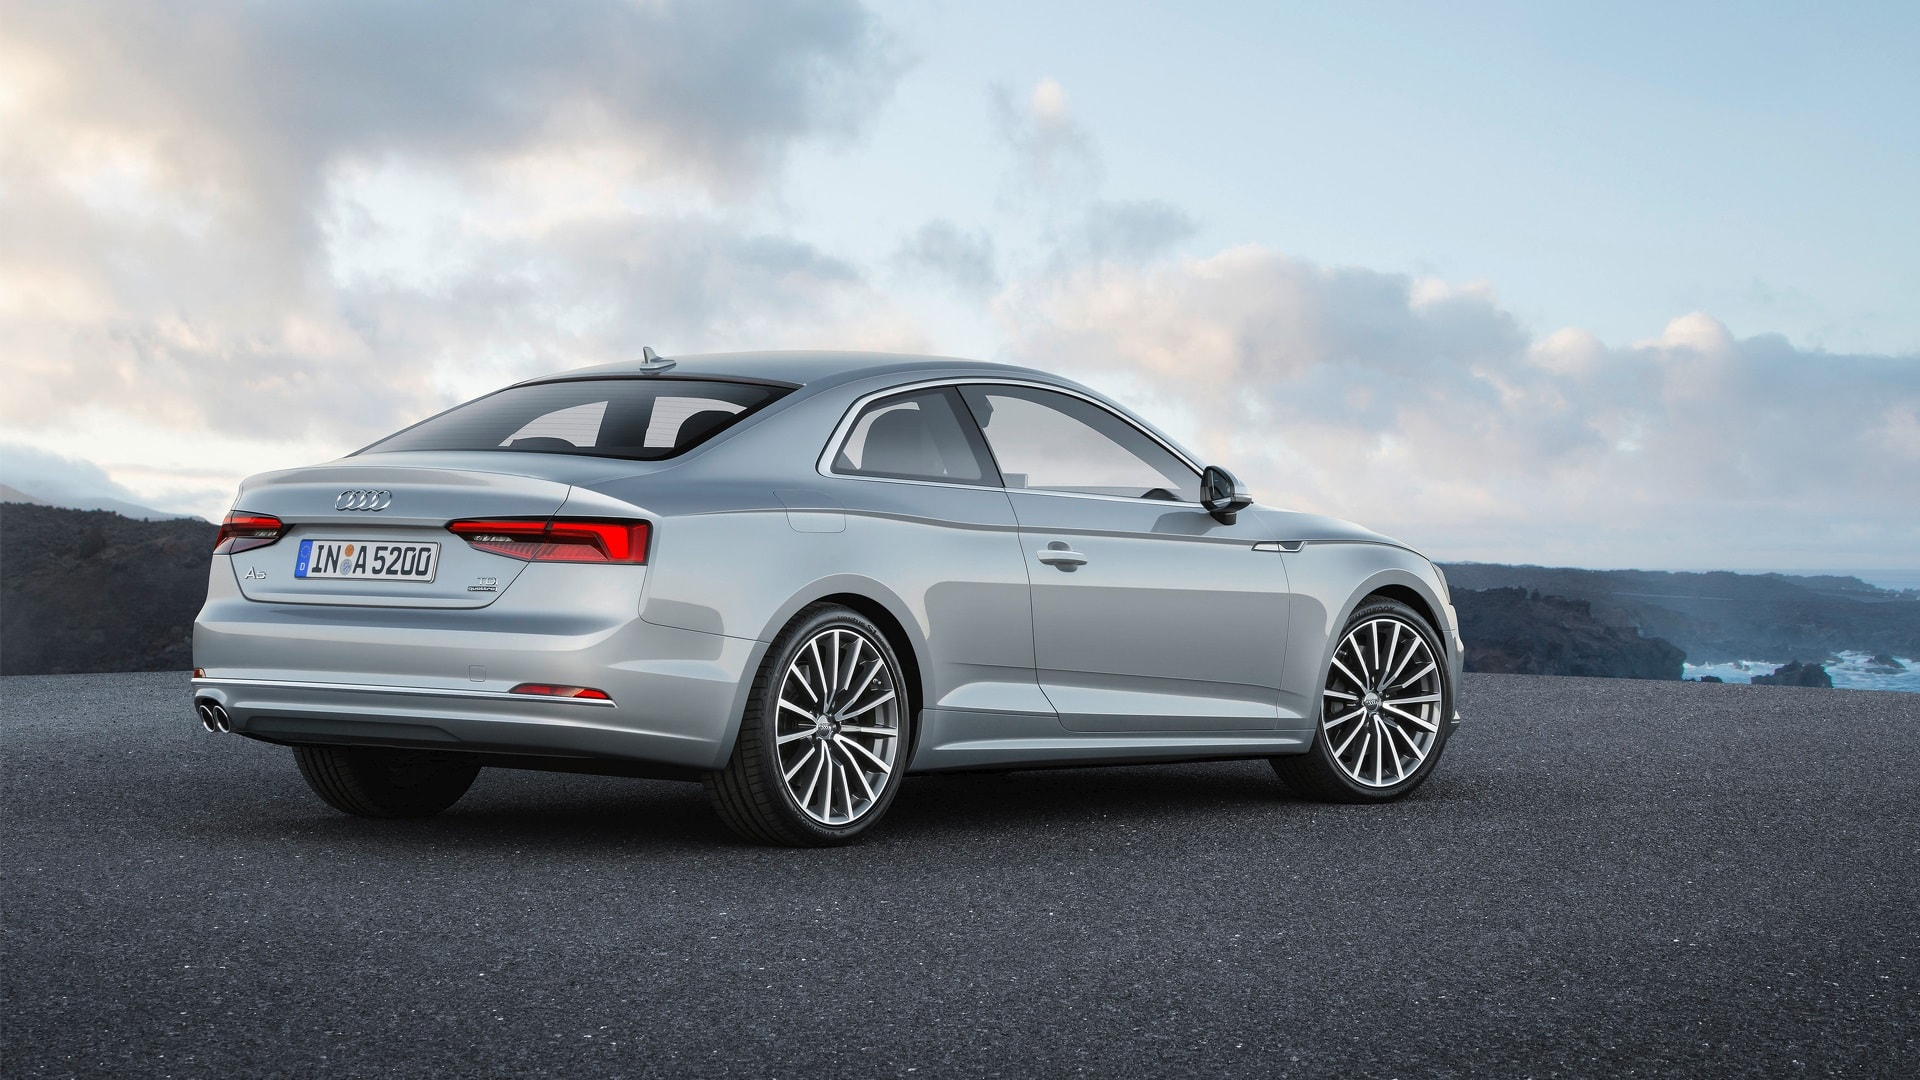 Audi A5 Coupe Ii Hd Wallpapers 7wallpapers Net